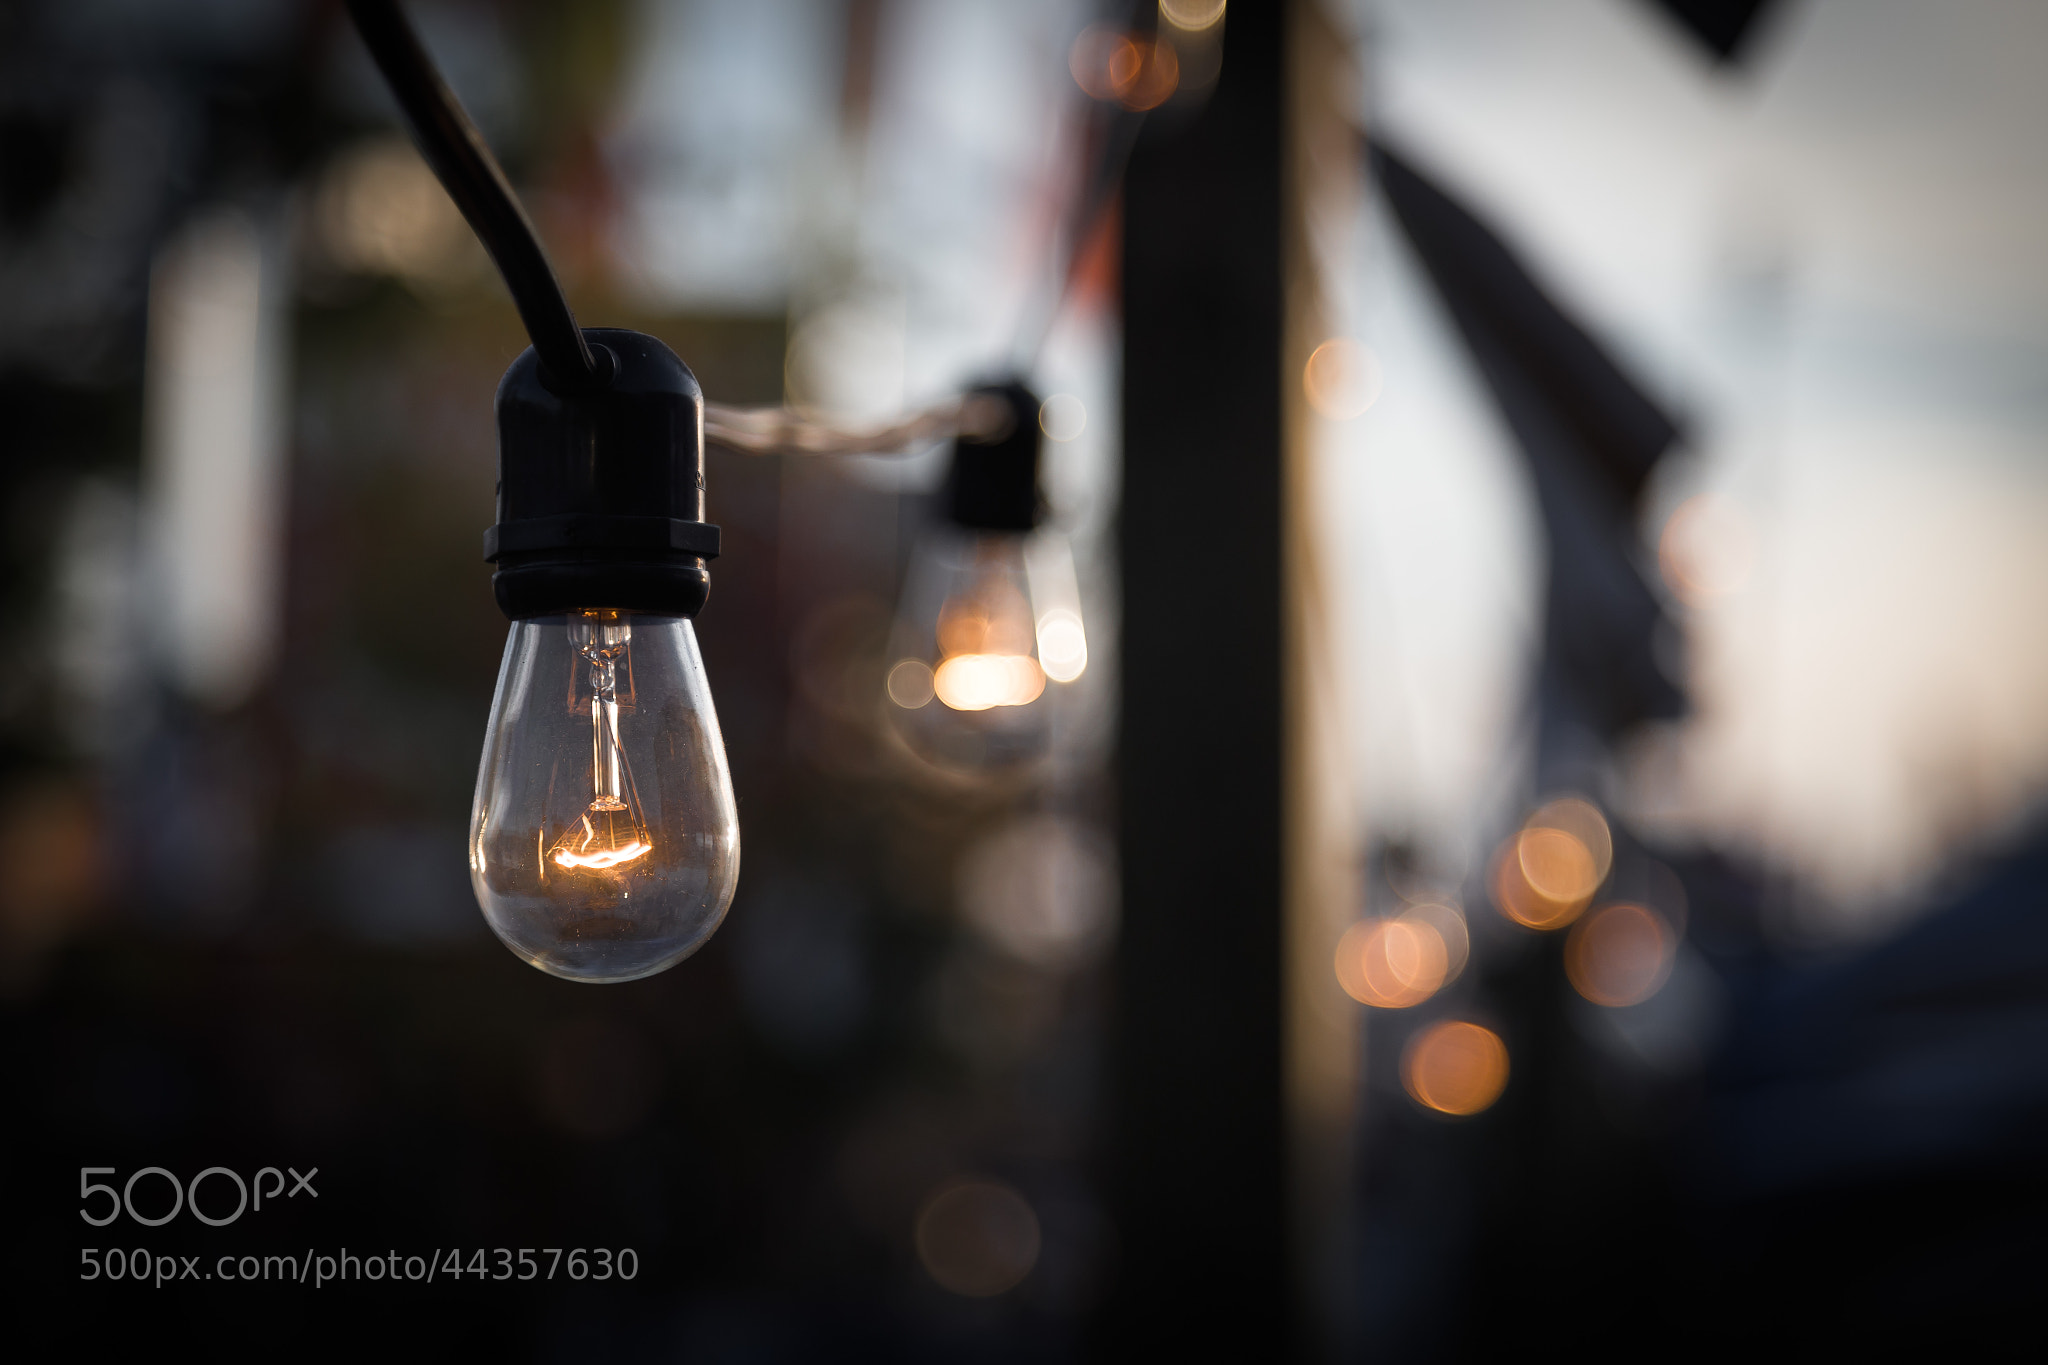 Photograph Lightbulbs by Eric Akaoka on 500px